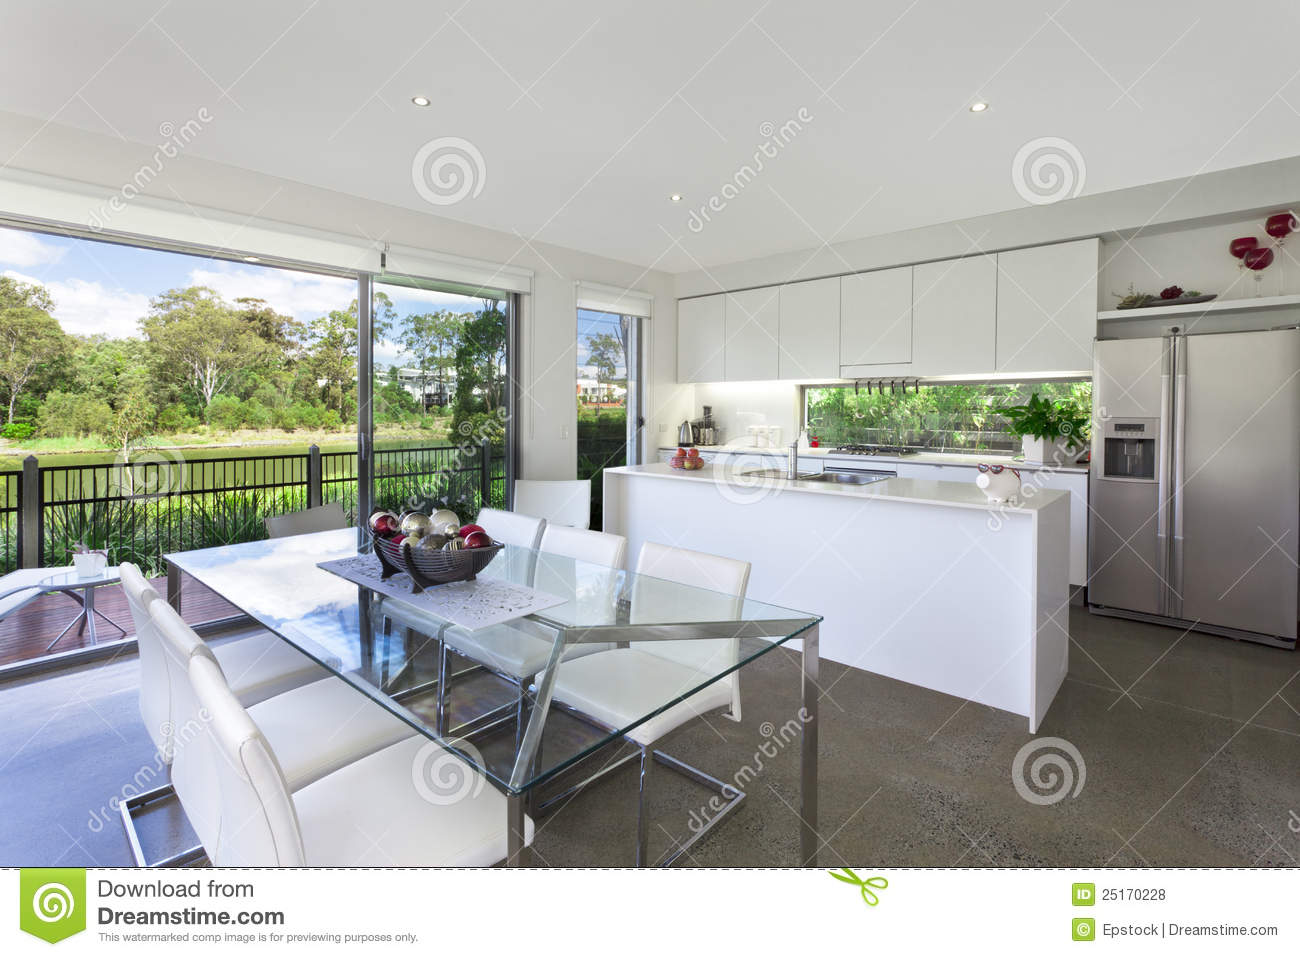 Modern Kithchen And Dining Room Stock Photo - Image of nobody ...